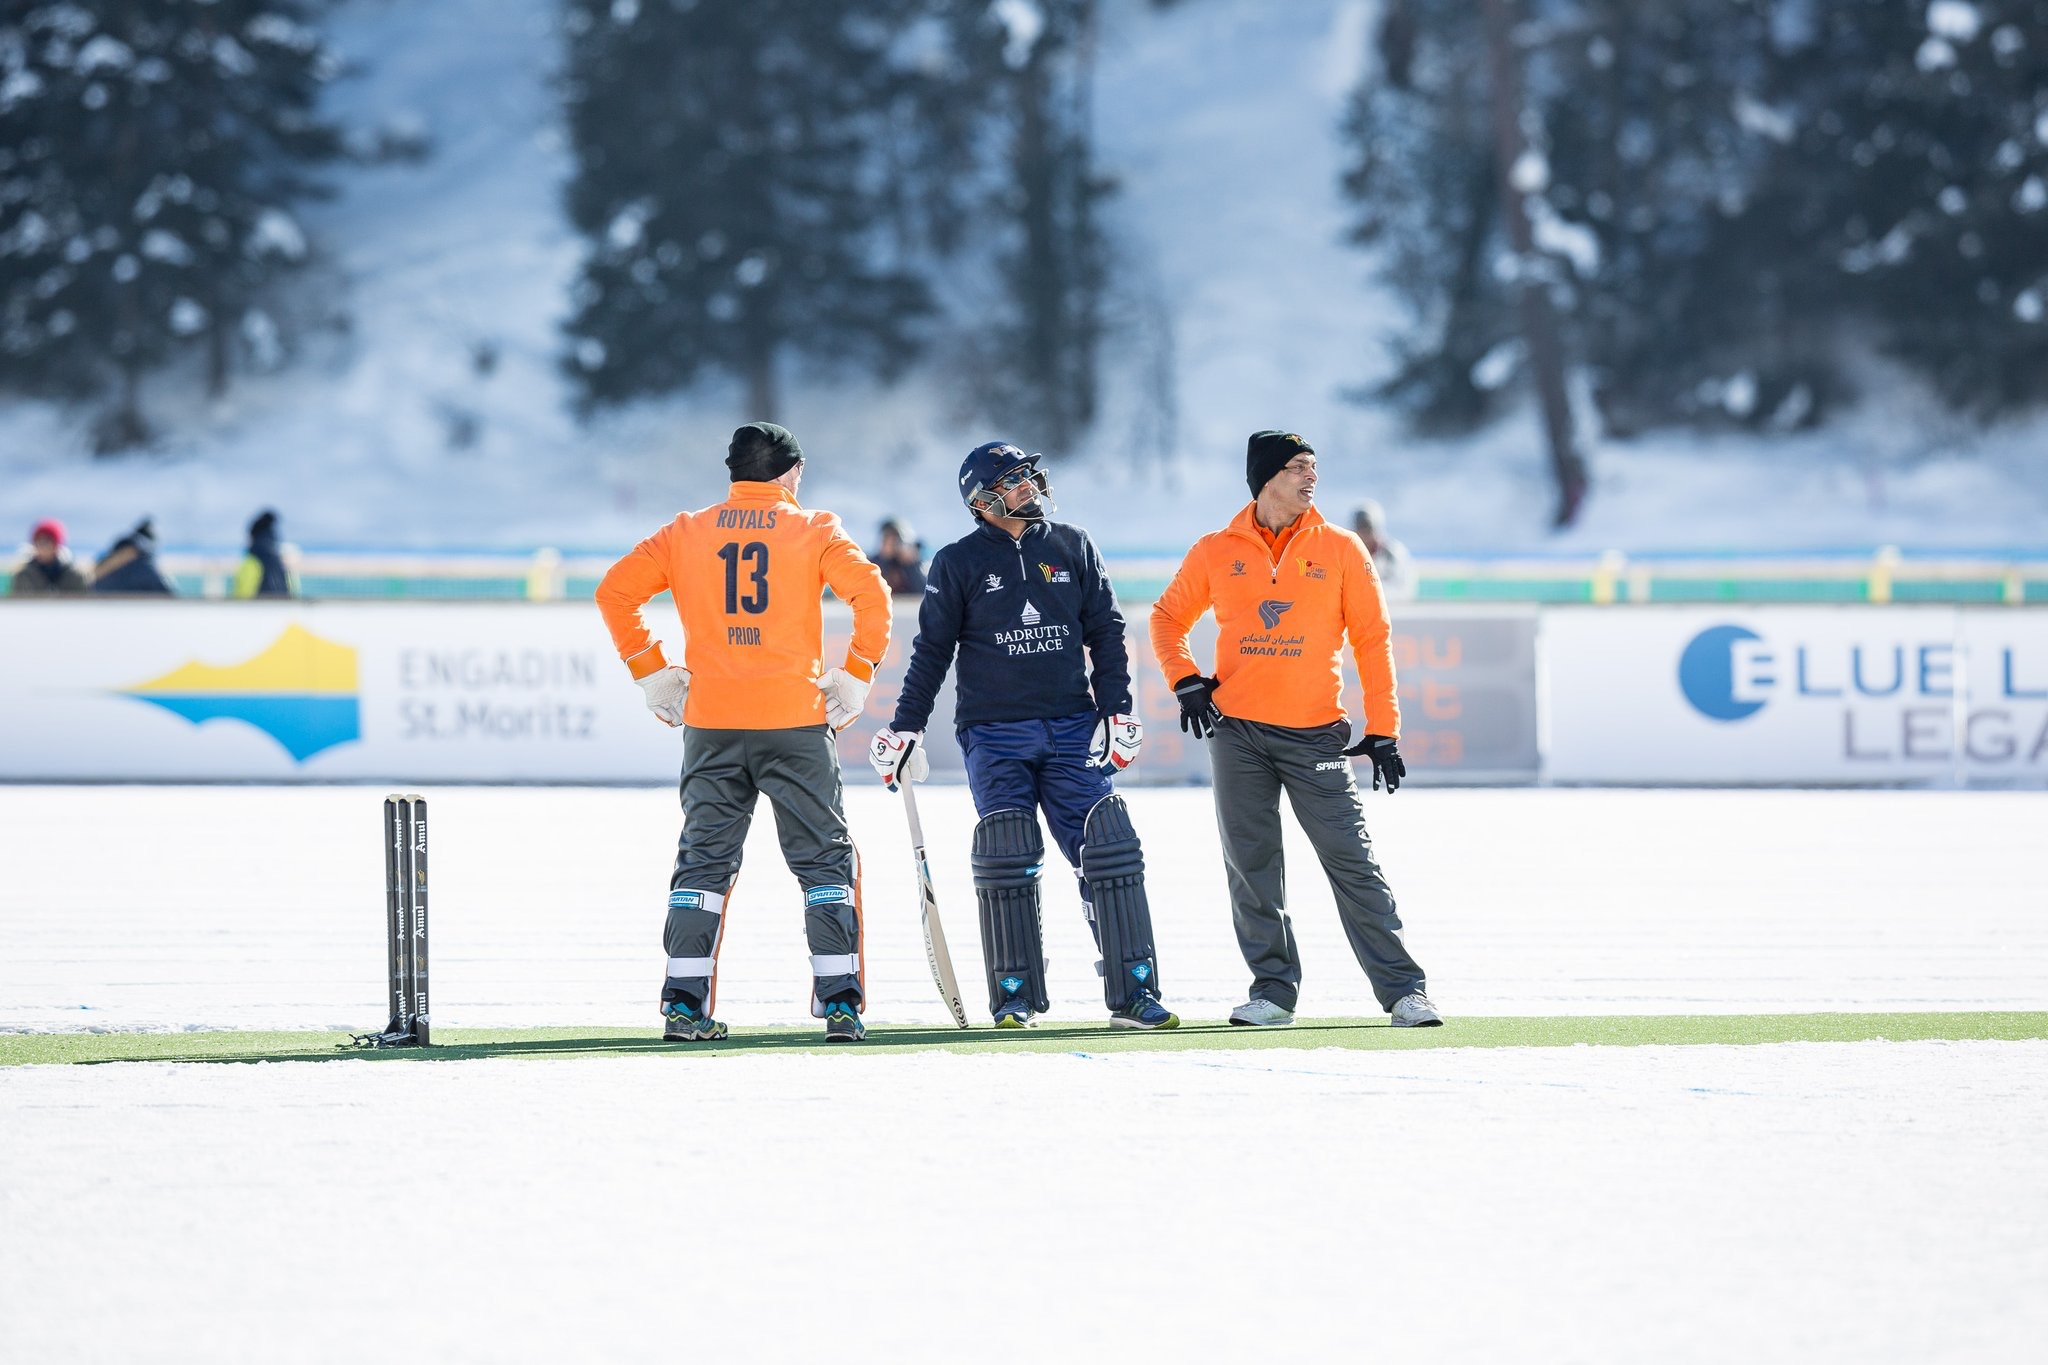 Ice Cricket: Shahid Afridi's Royals beat Virender Sehwag's Diamonds by six wickets